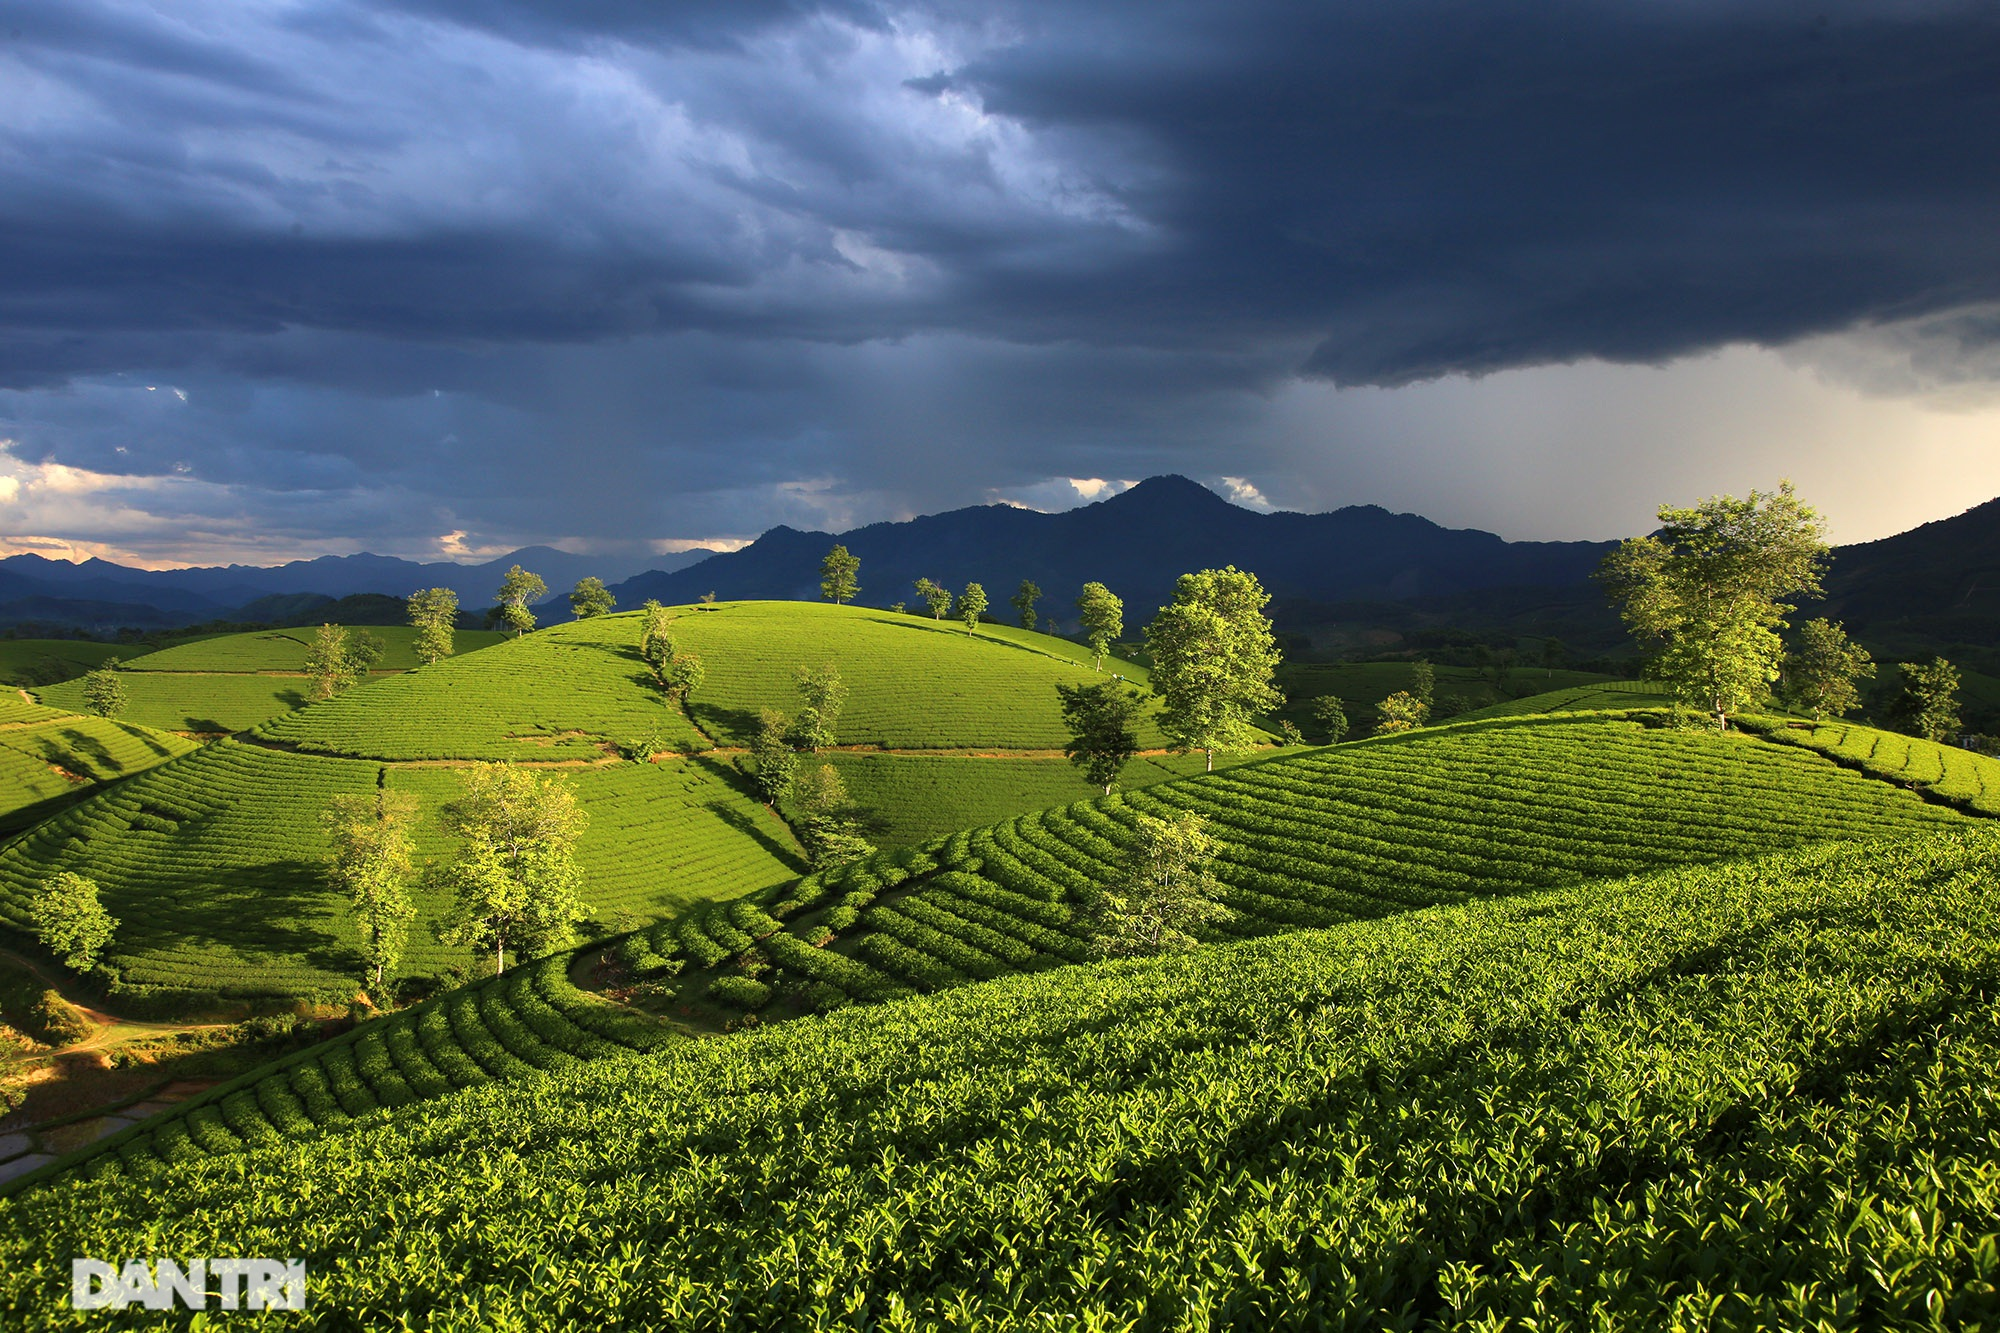 The stunning scenery of Long Coc tea hills in Phu Tho - 1